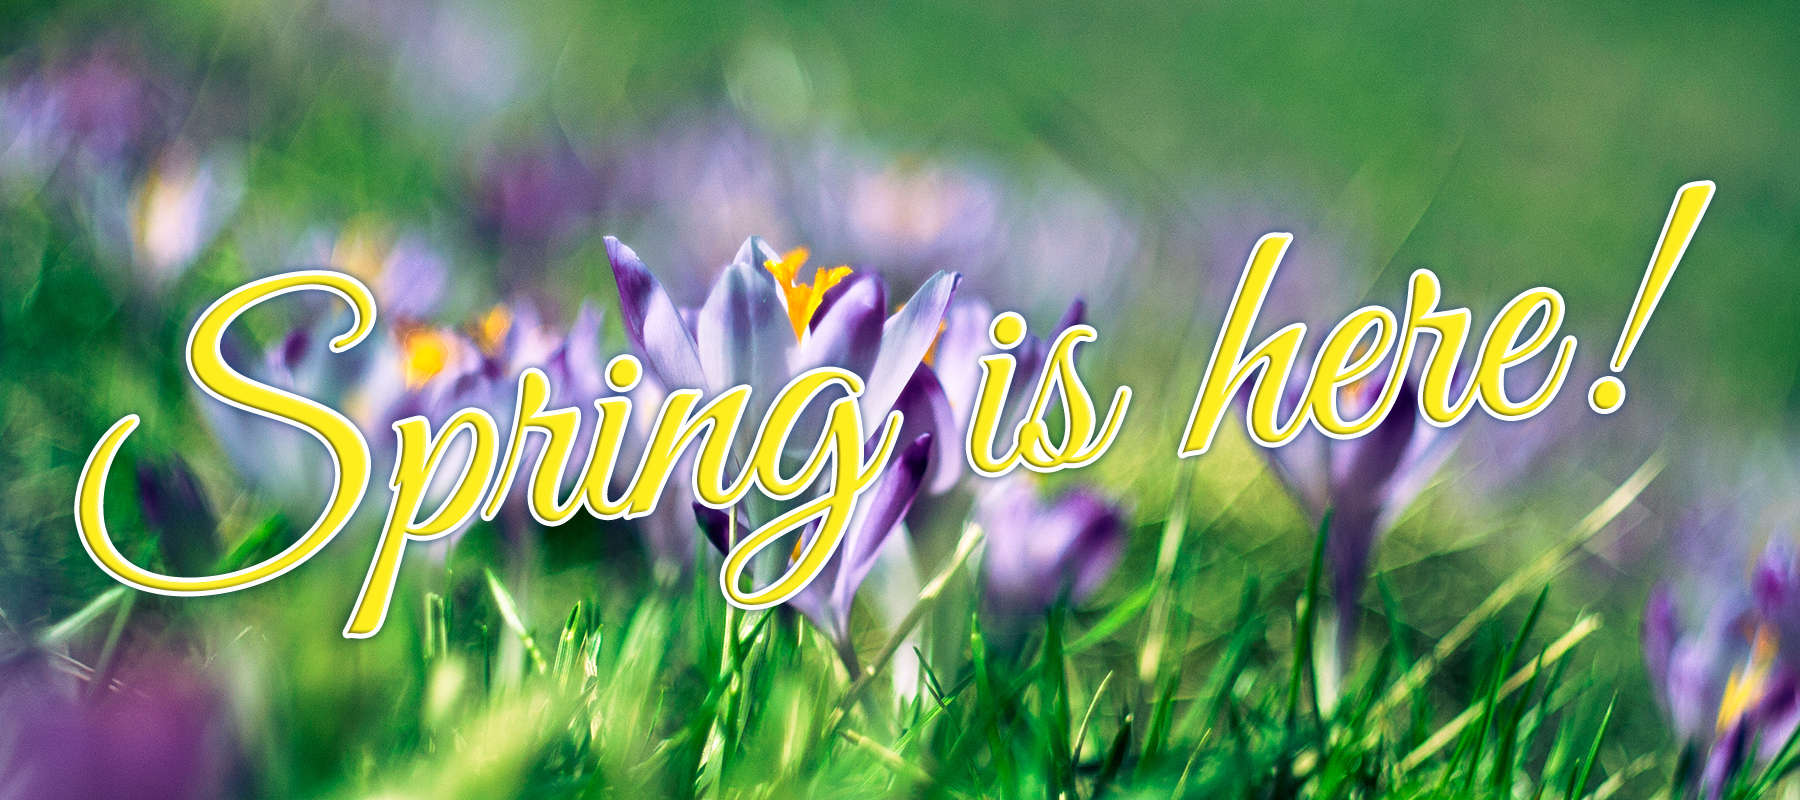 Try Something New This Spring